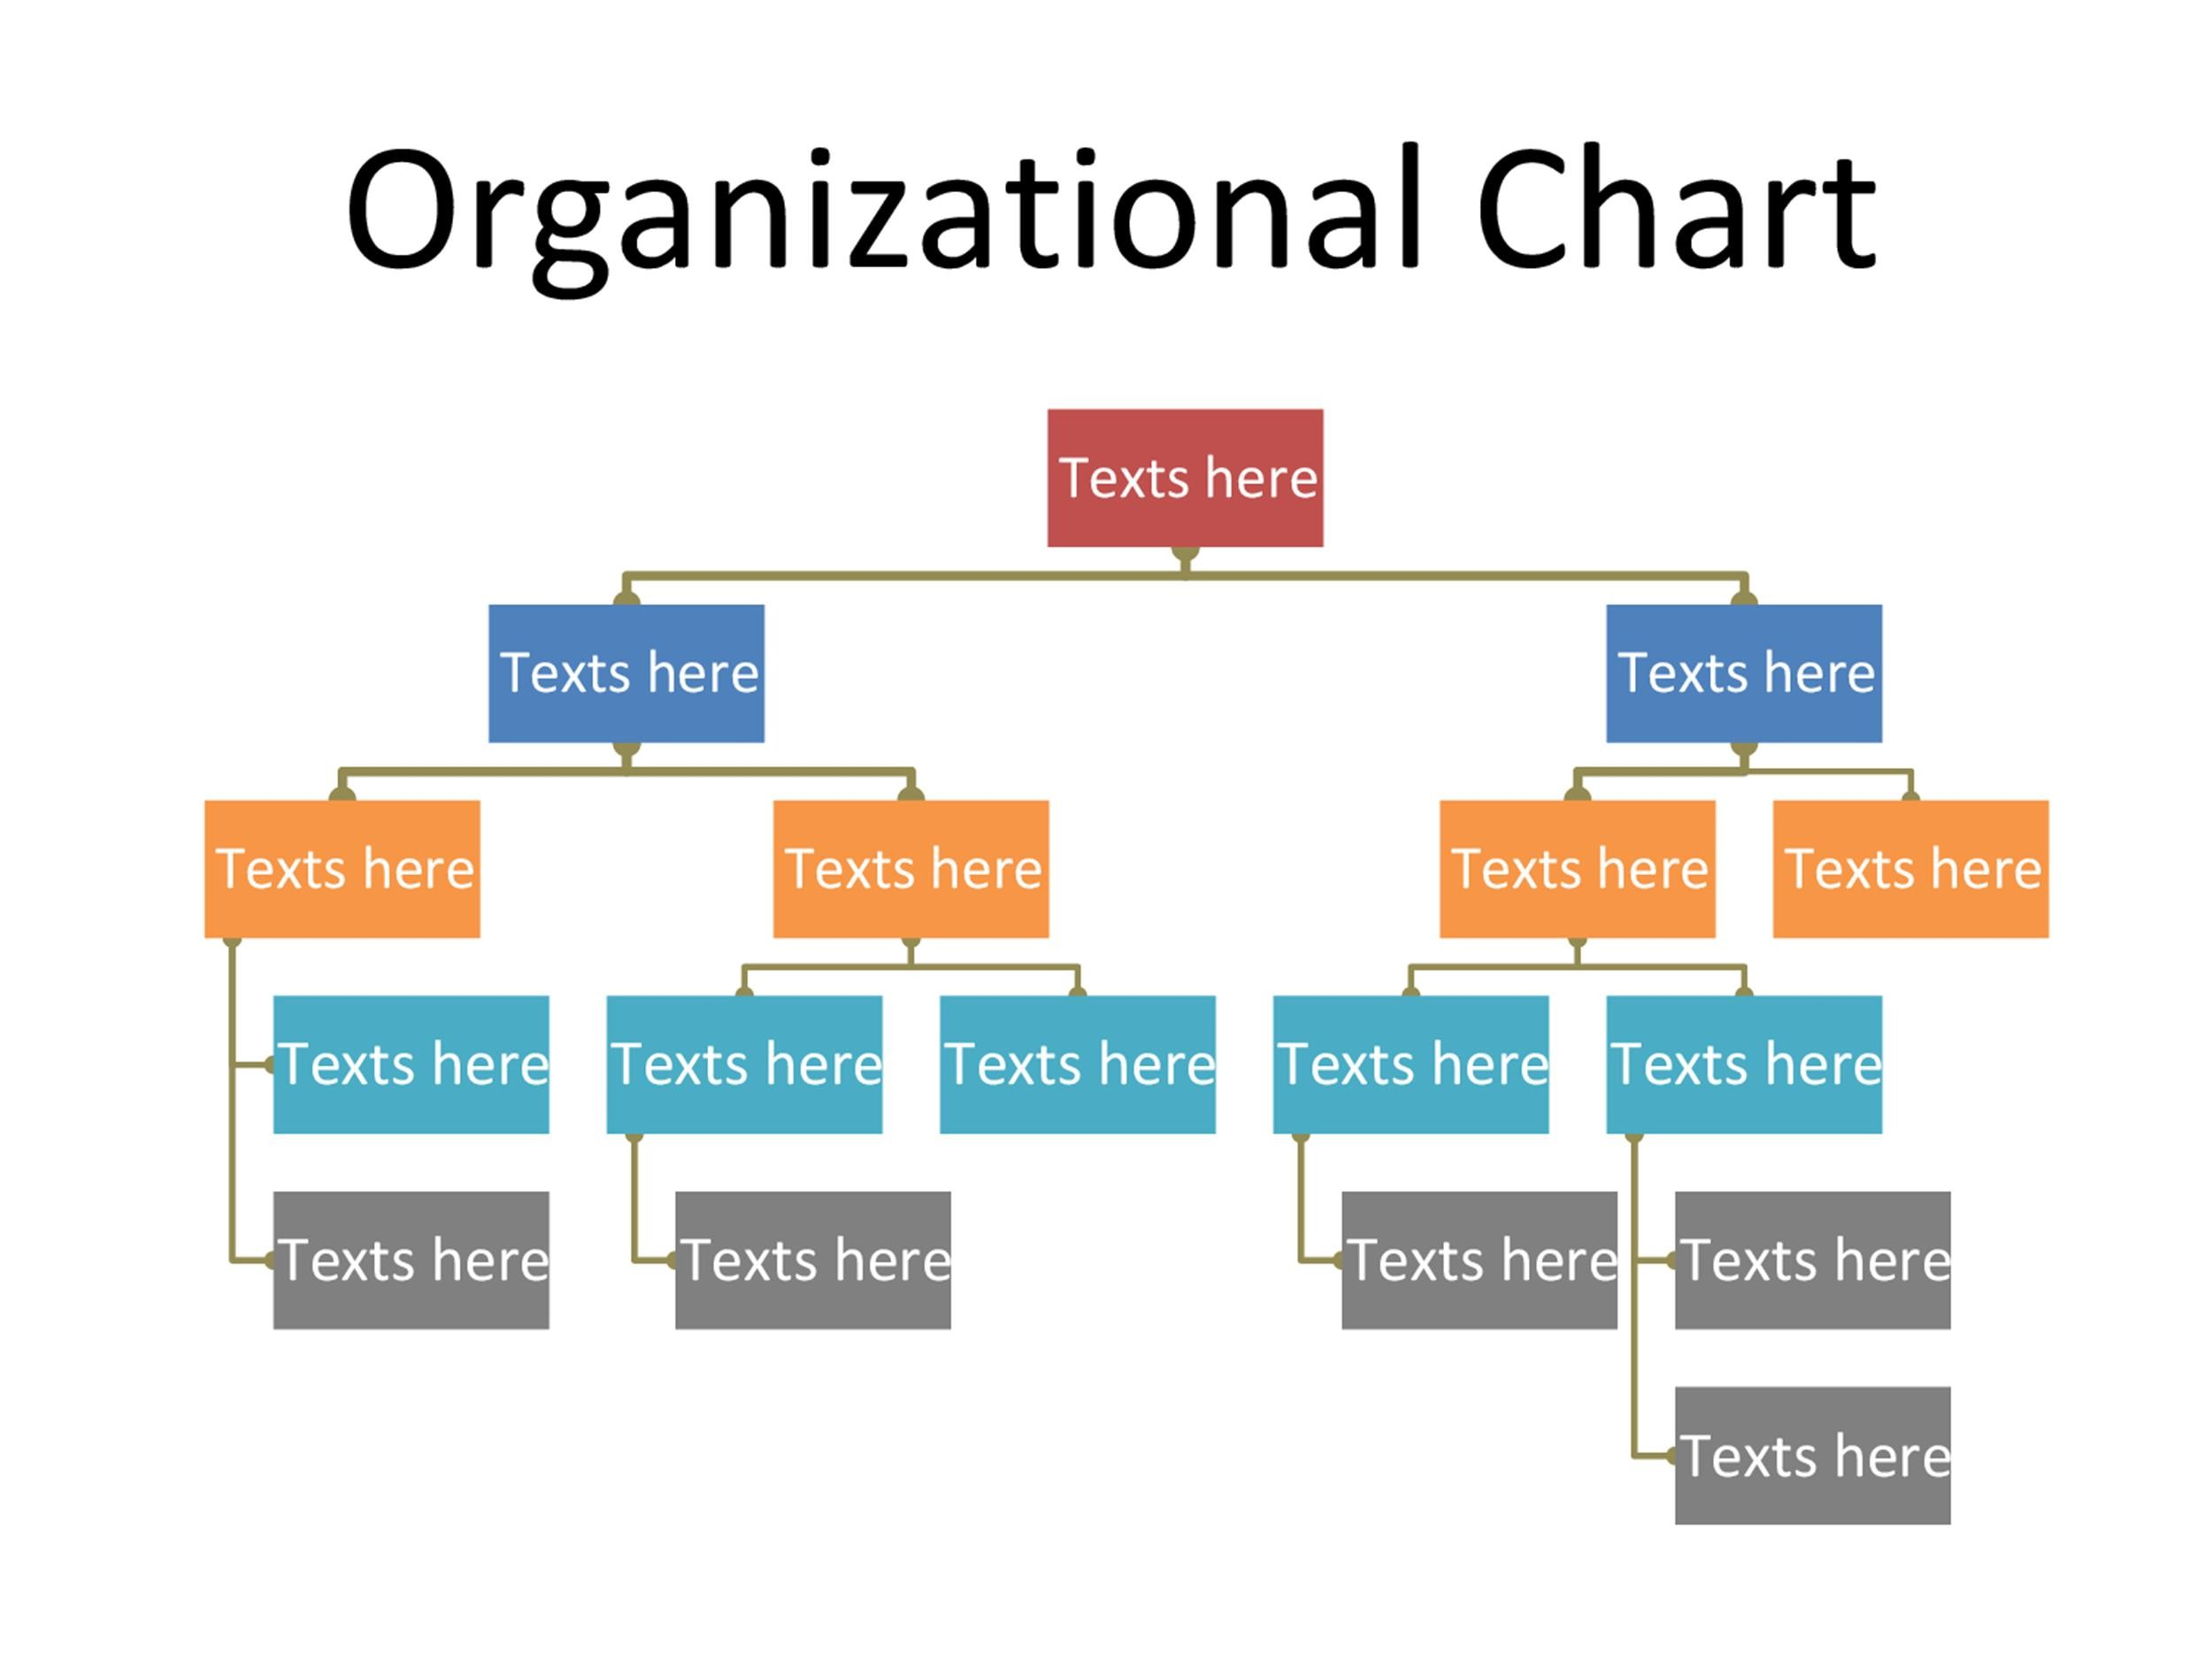 Organizational chart templates | editable online and free to download.